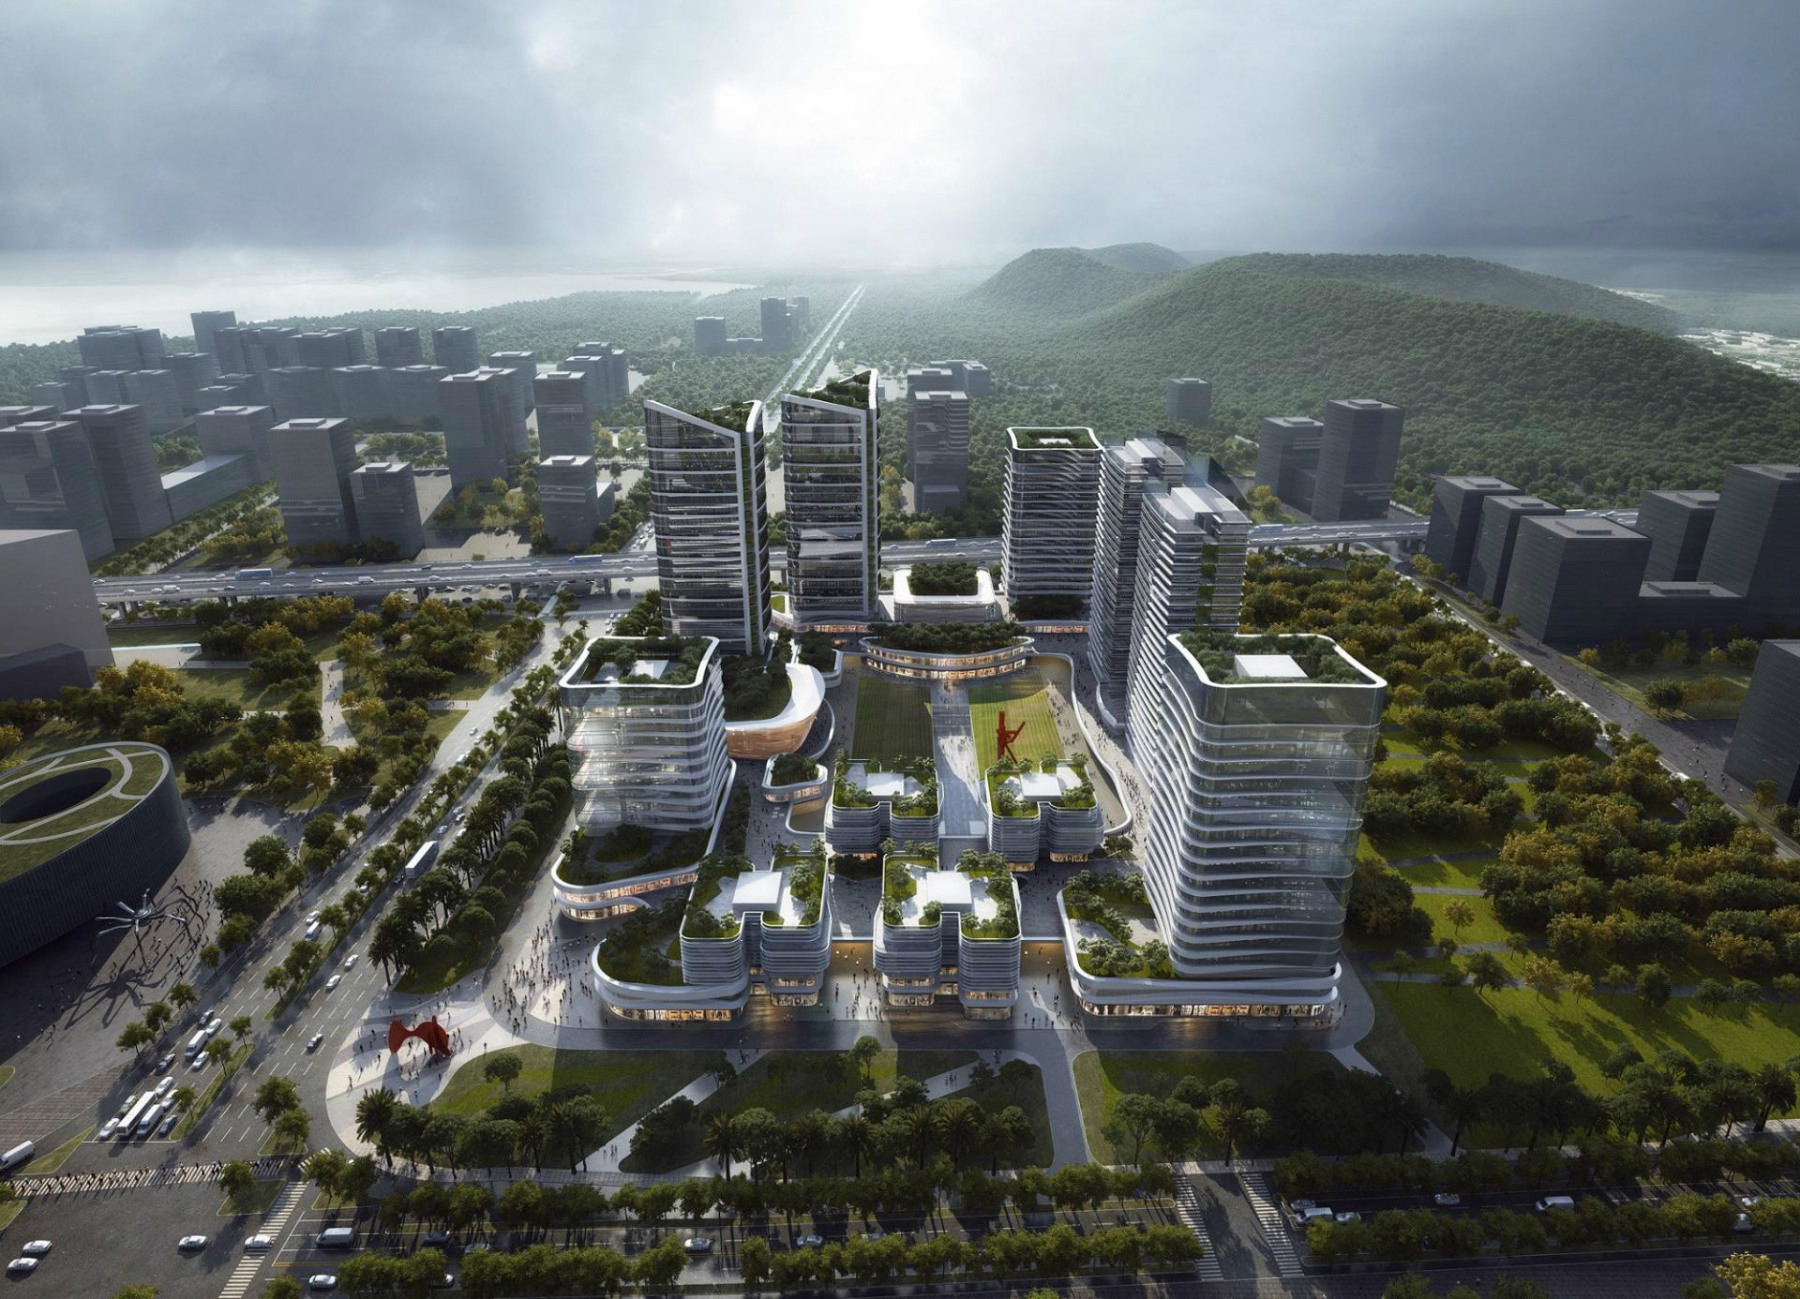 Macau recommends new projects for Hengqin Industrial Park